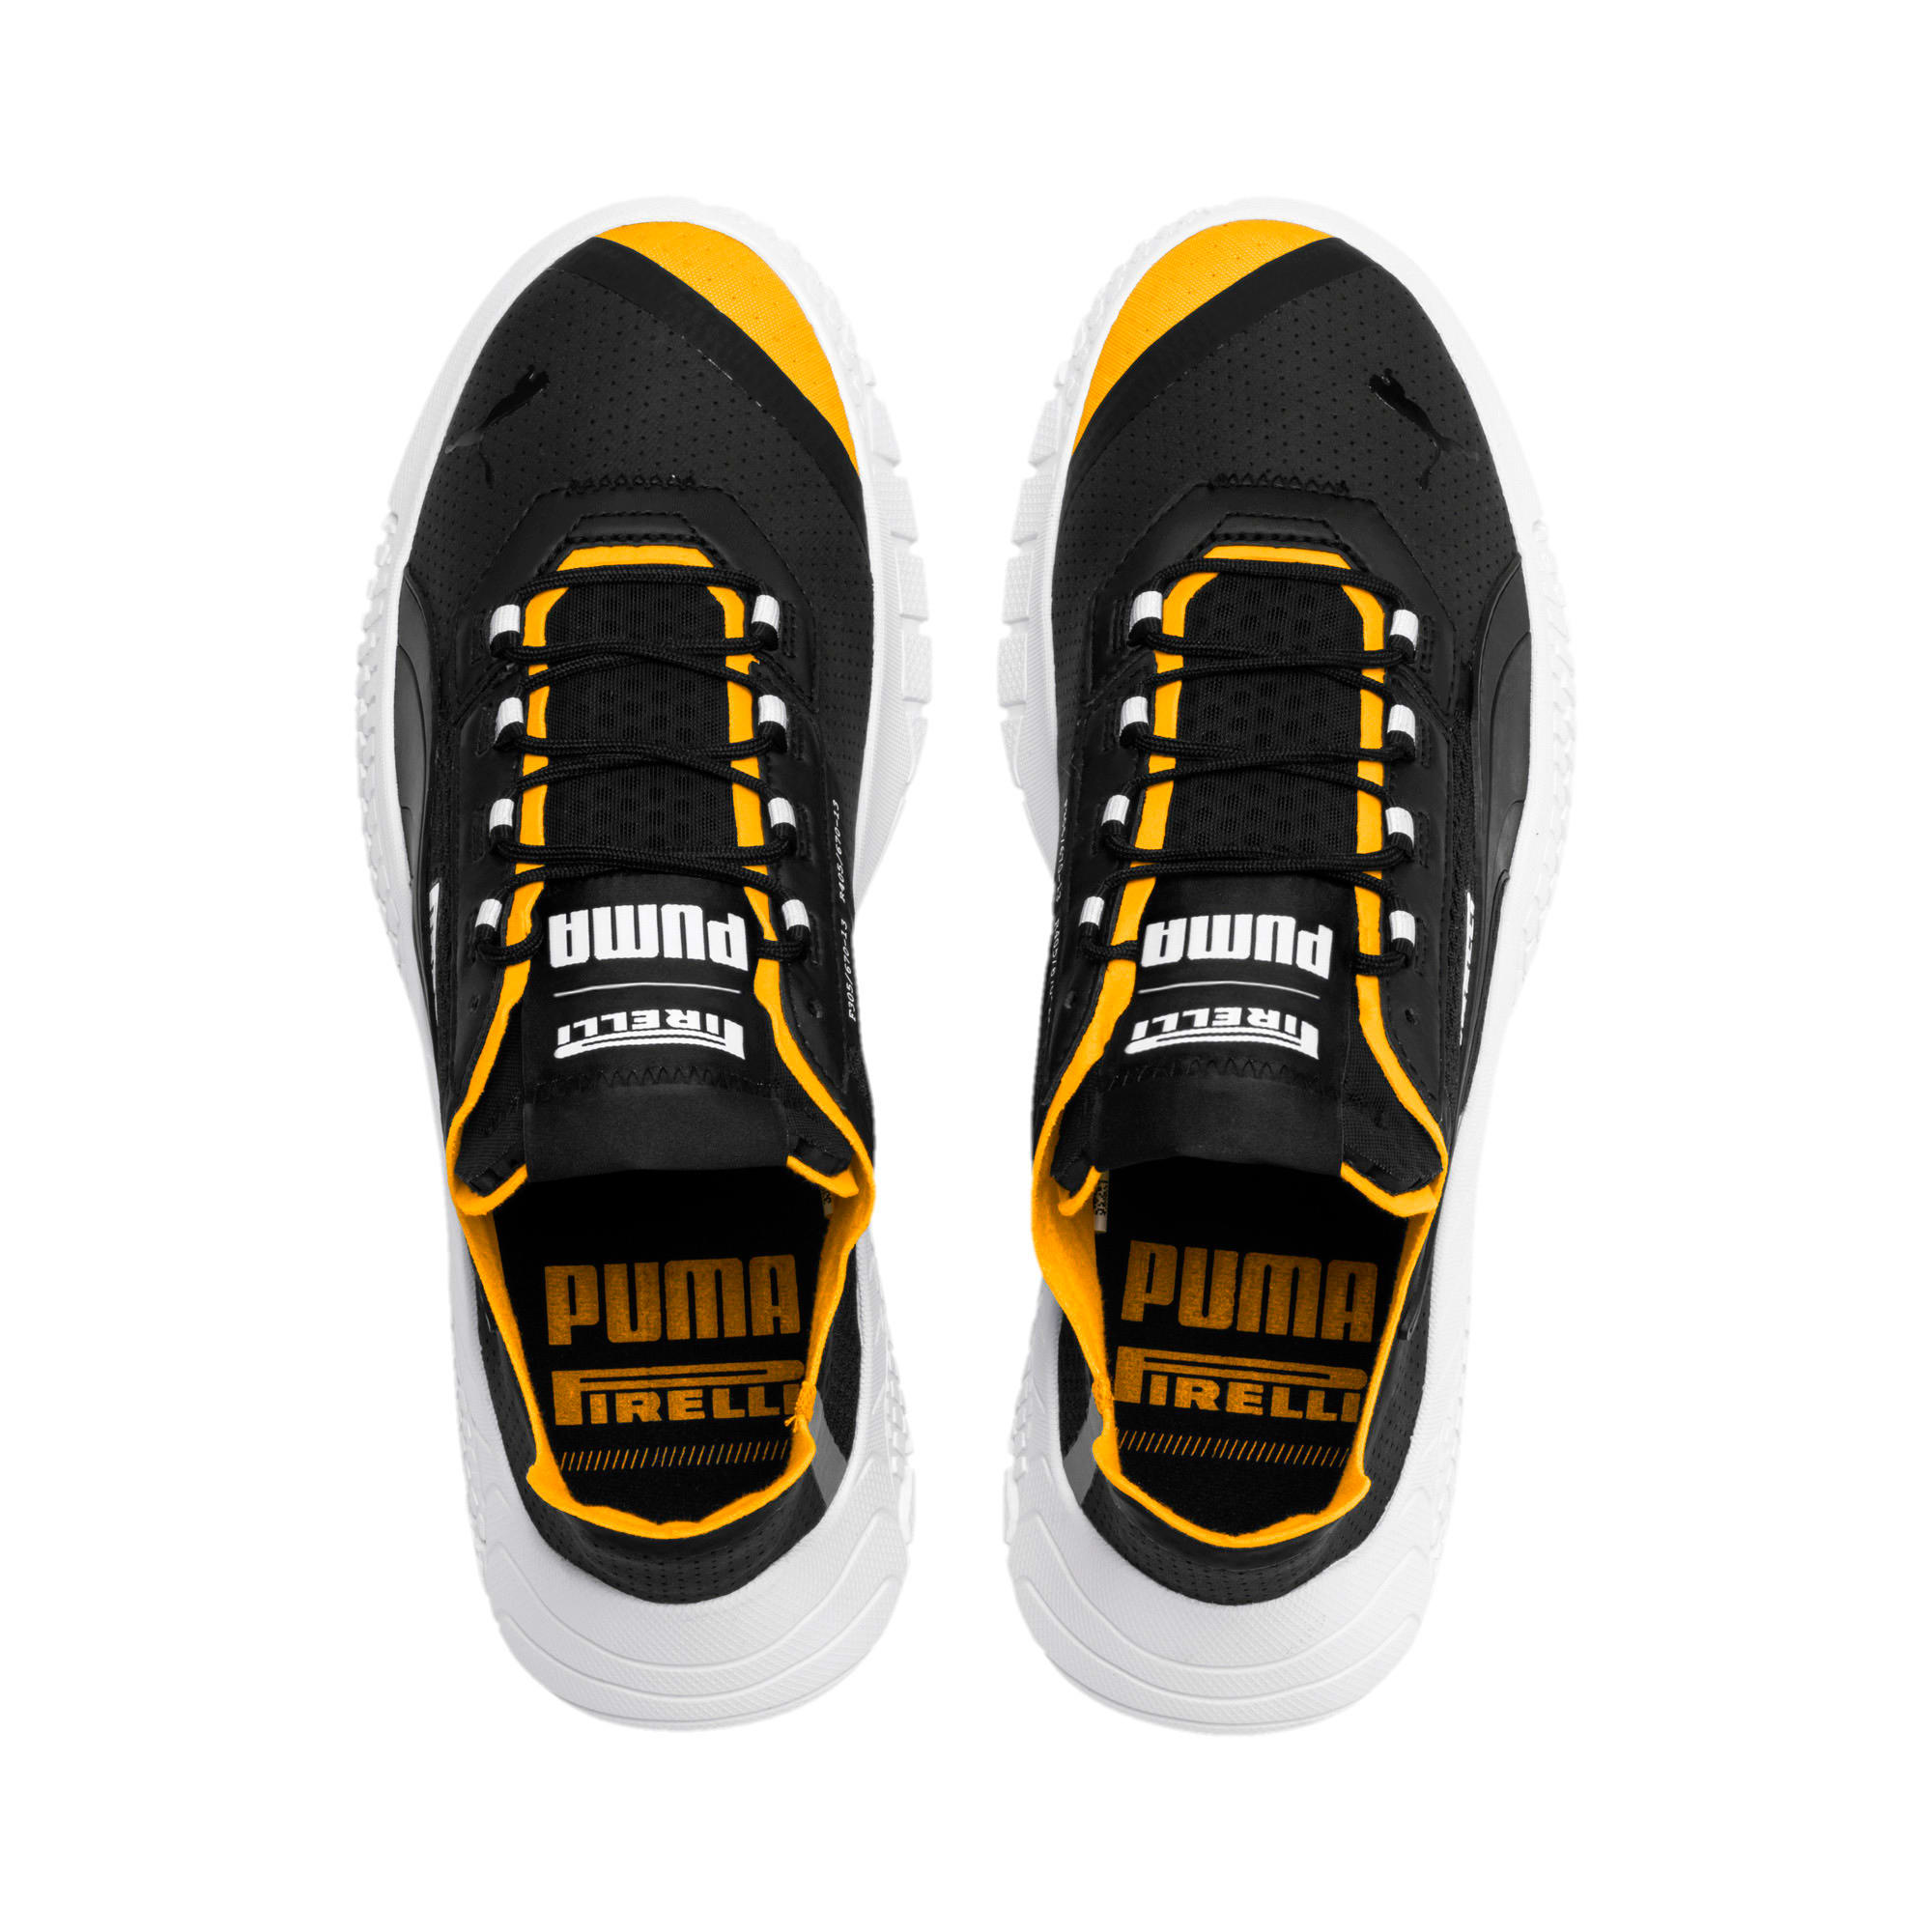 Thumbnail 7 of PUMA x PIRELLI Replicat-X Sneaker, Puma Black-Puma White-Zinnia, medium